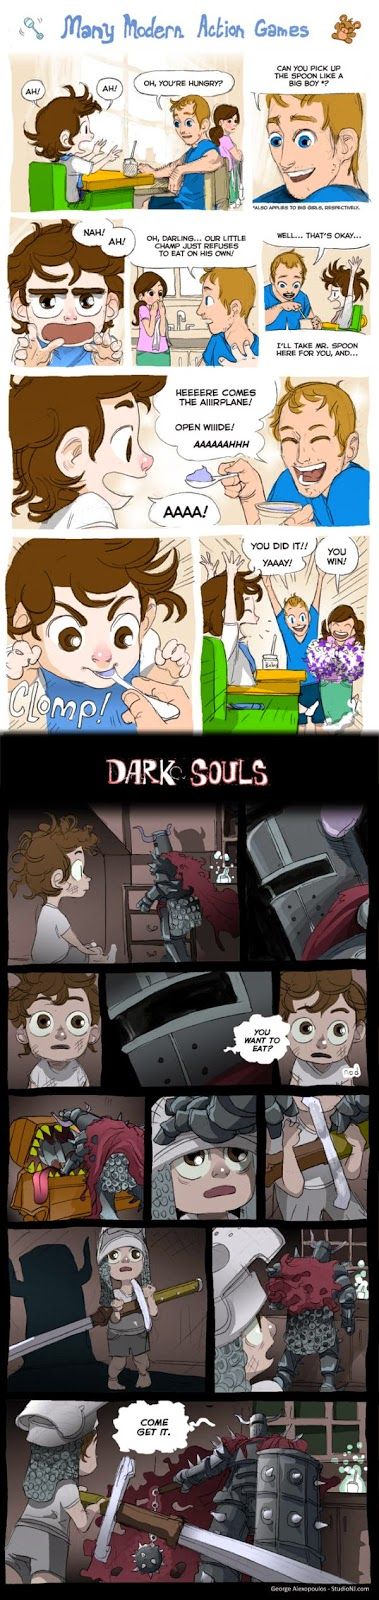 The Learning Curve of Dark Souls